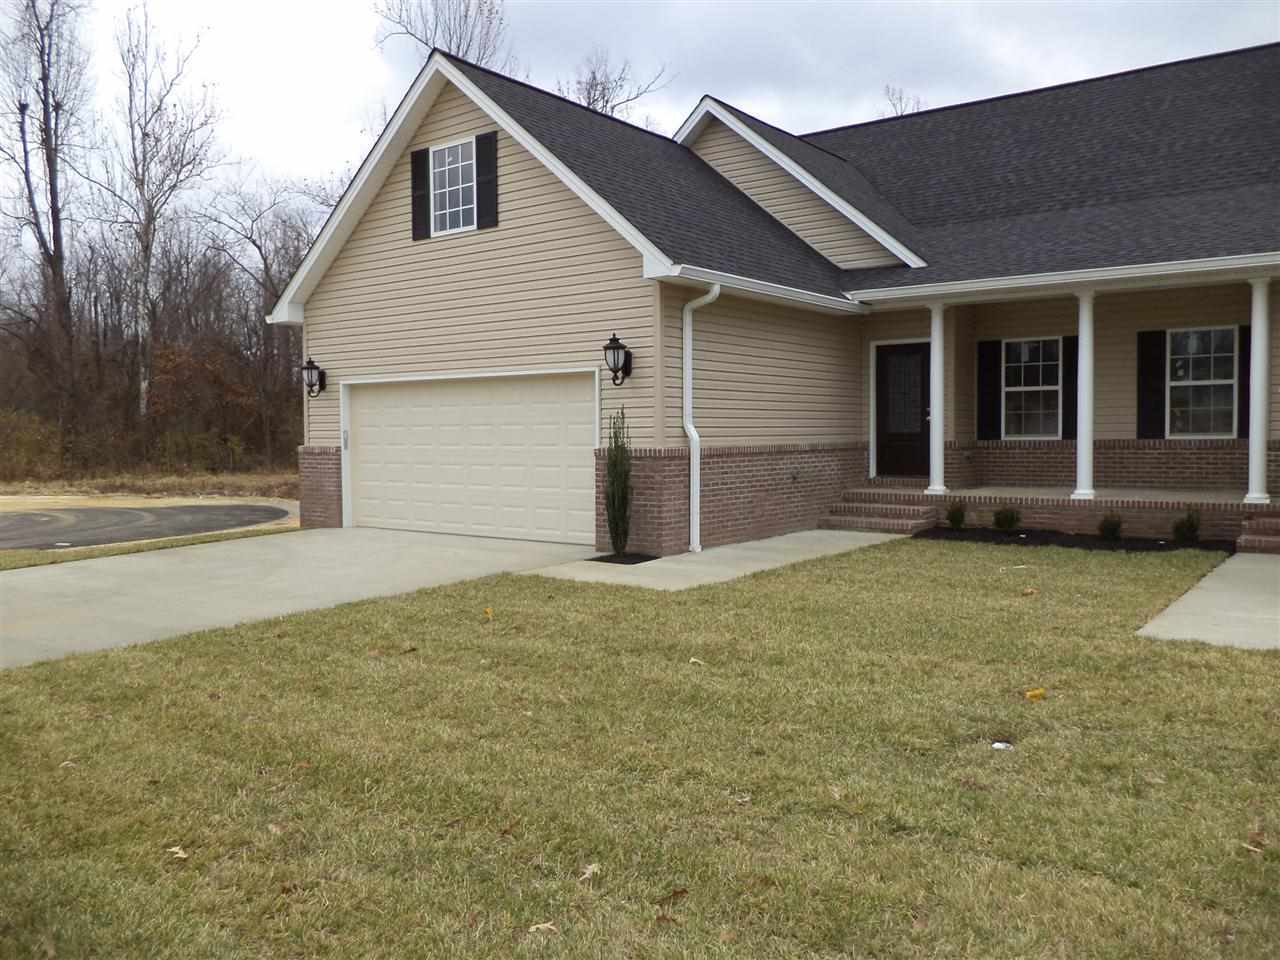 Rental Homes for Rent, ListingId:32992200, location: 5172 Ogilvie Ave Paducah 42001